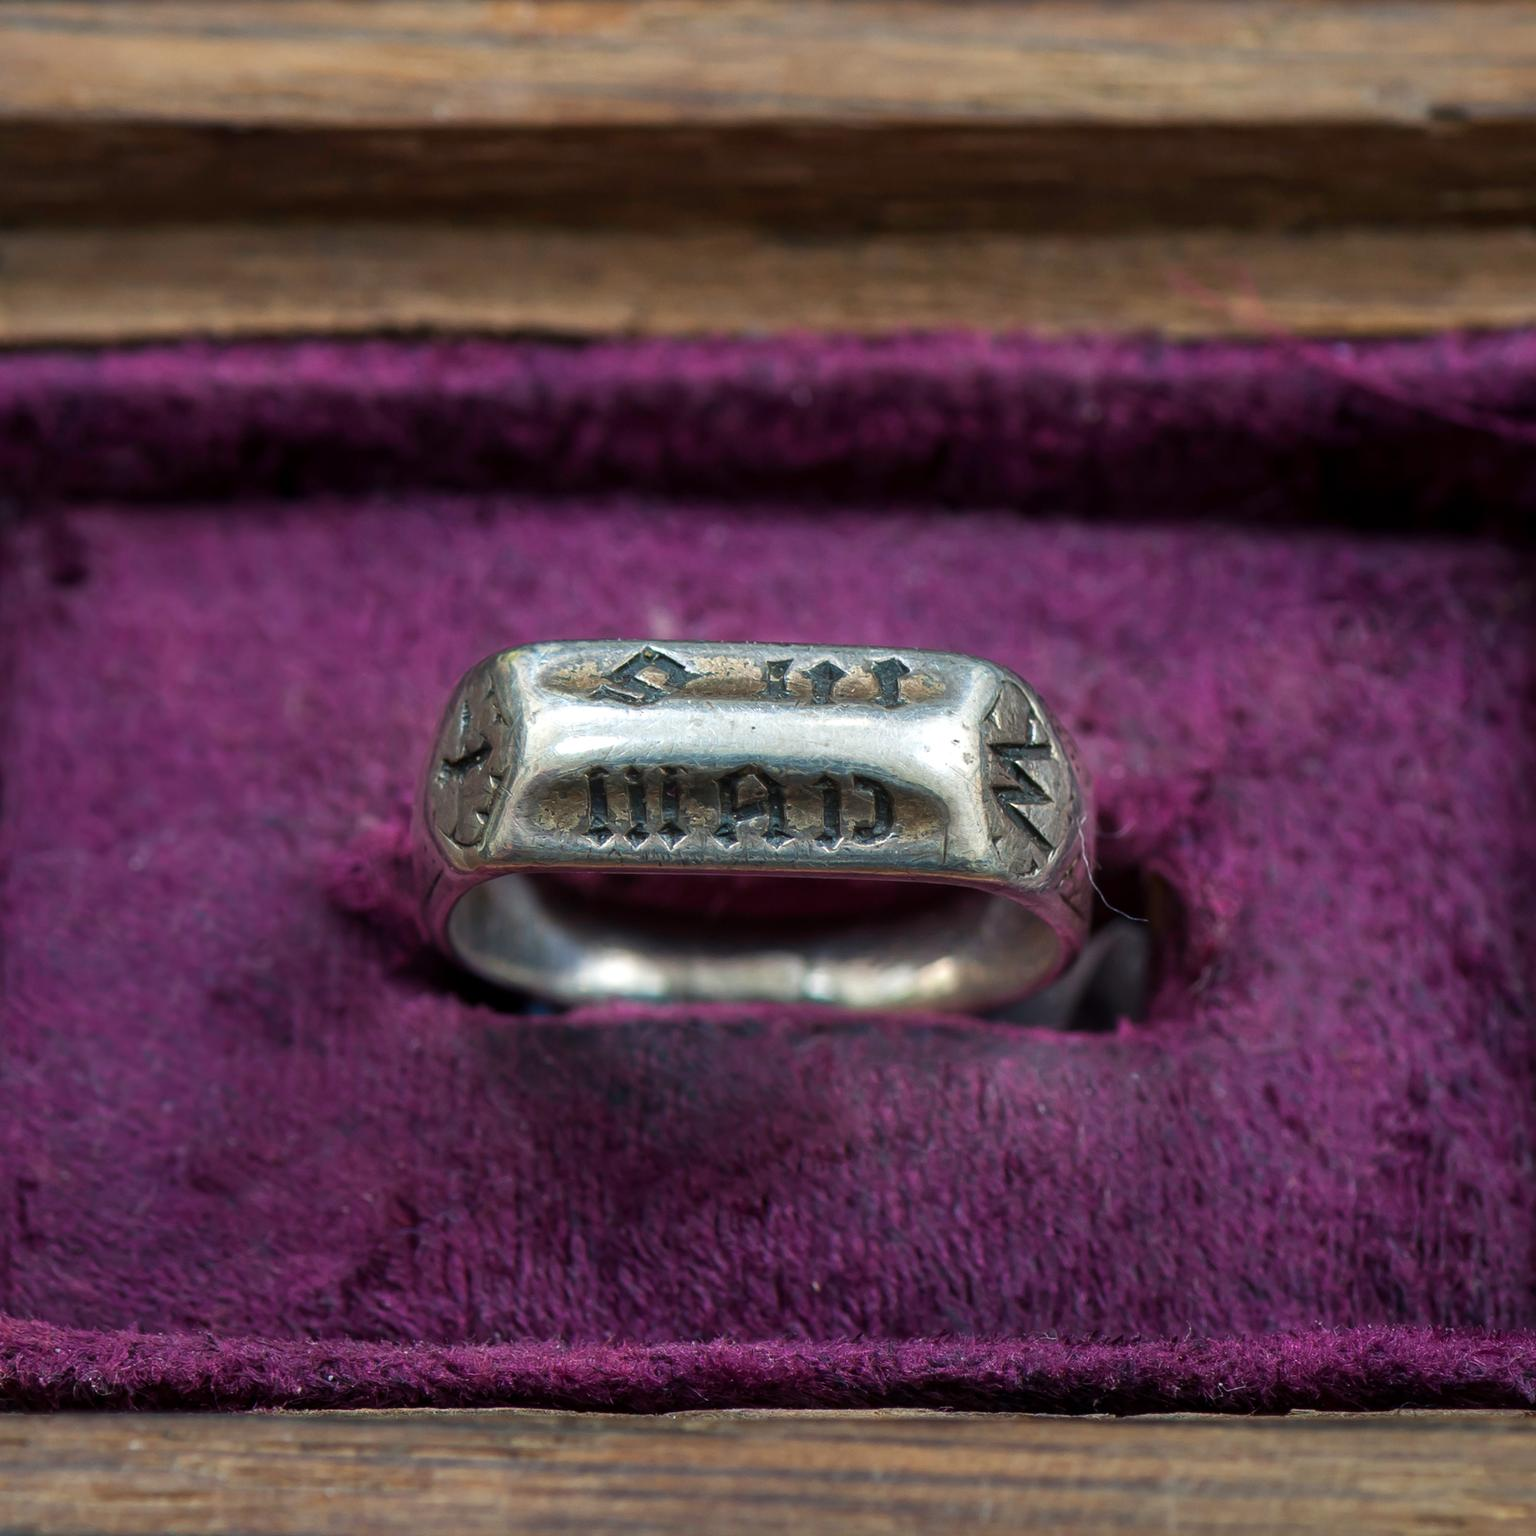 Joan of Arc antique ring inscribed